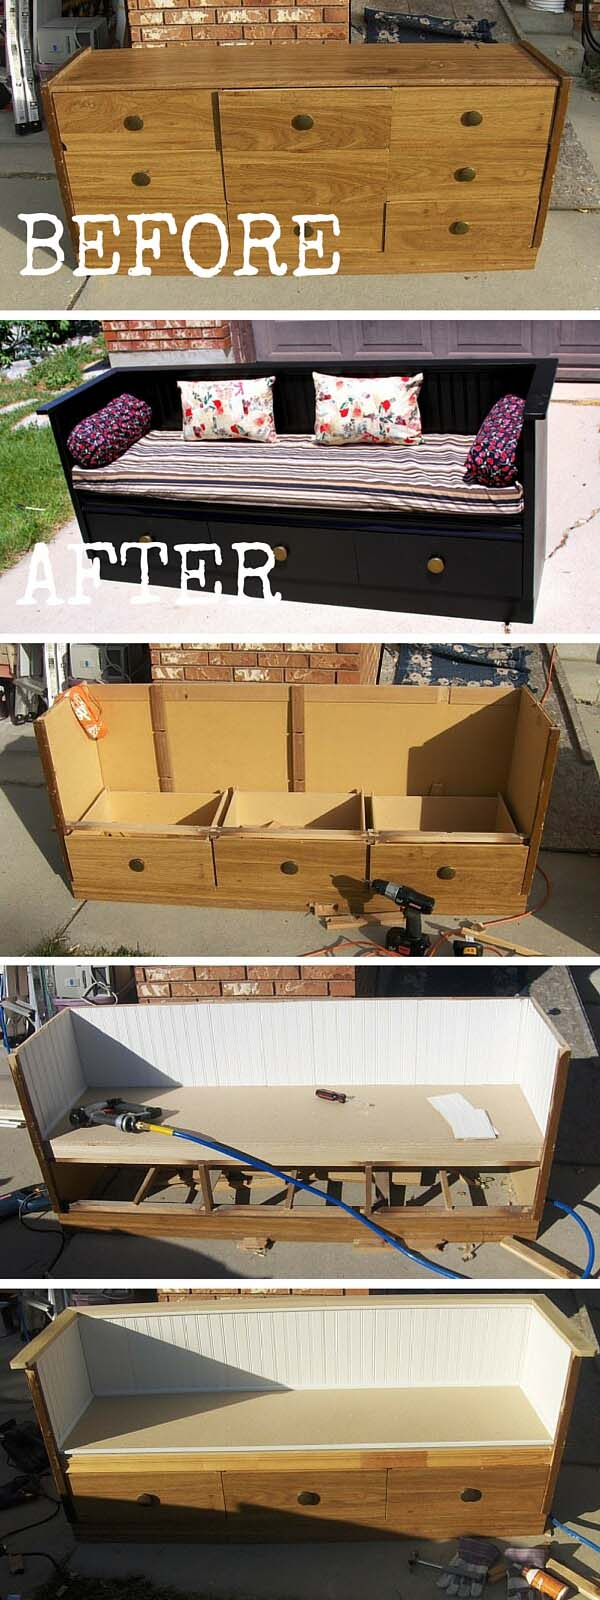 Dresser to Bench Project with Storage Drawers #entrywaybench #diy #decorhomeideas